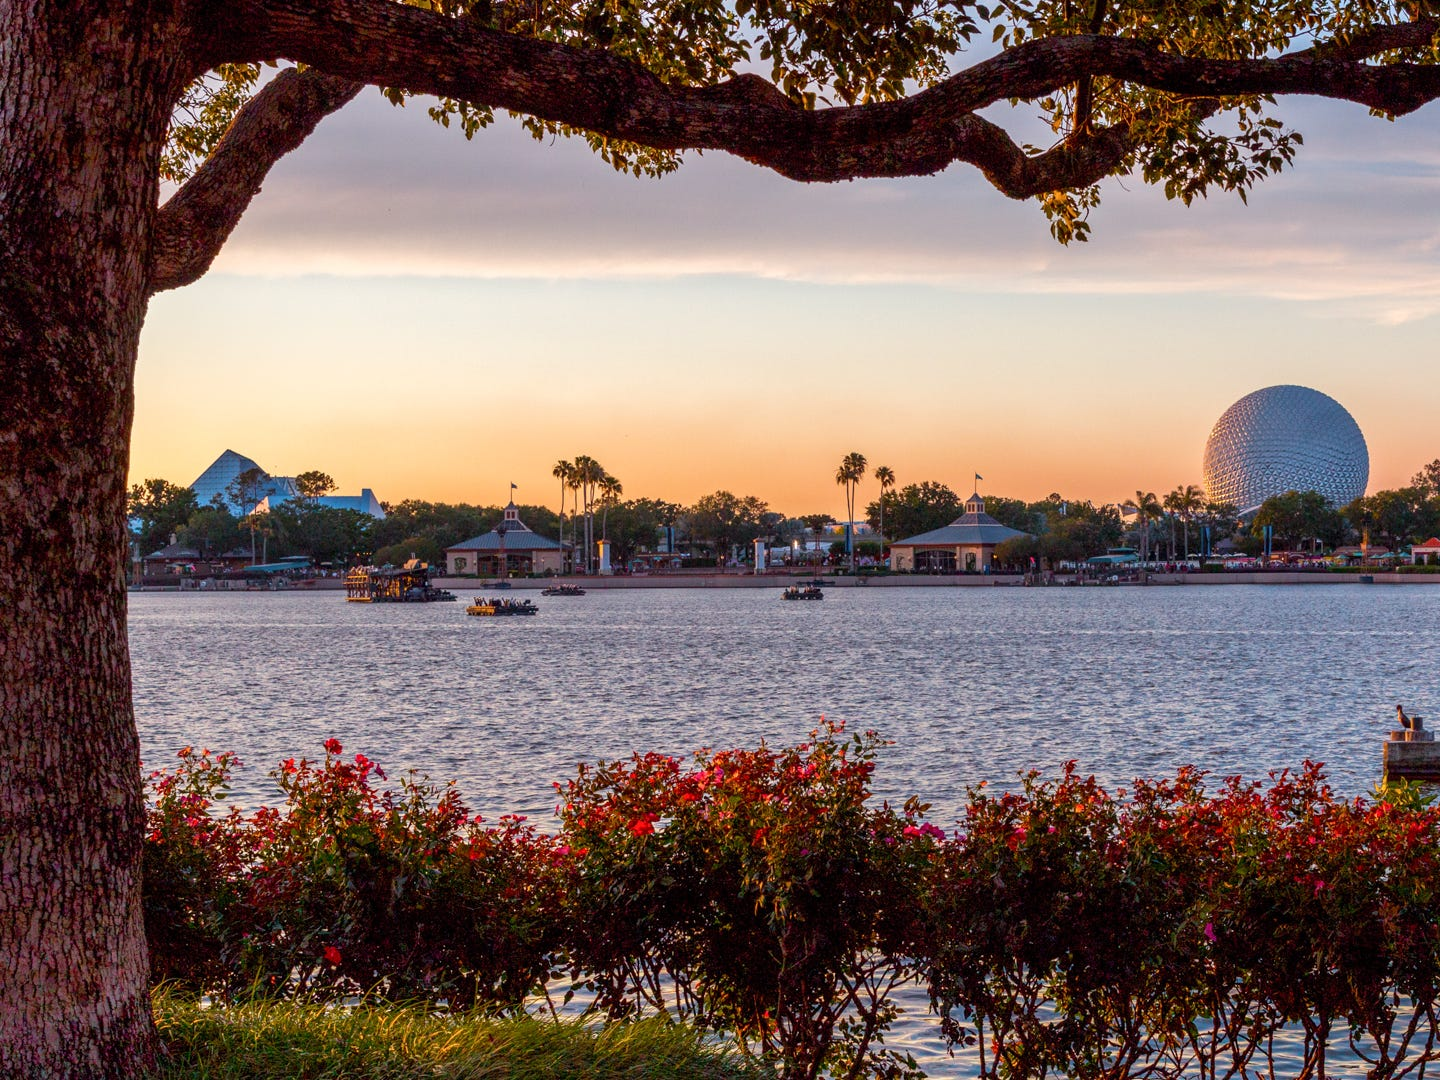 September: Orlando, Florida. Average airfare: $244. Average hotel costs: $108. Average temperature: 81 degrees. If you're planning a Disney World vacation, September is one of the best months to go. During this month, you'll get Orlando's lowest hotel rates of the year, plus you're there in time for Epcot's Food & Wine Festival. The weather is hot, but the water parks are still open so you'll have plenty of opportunities to cool down.